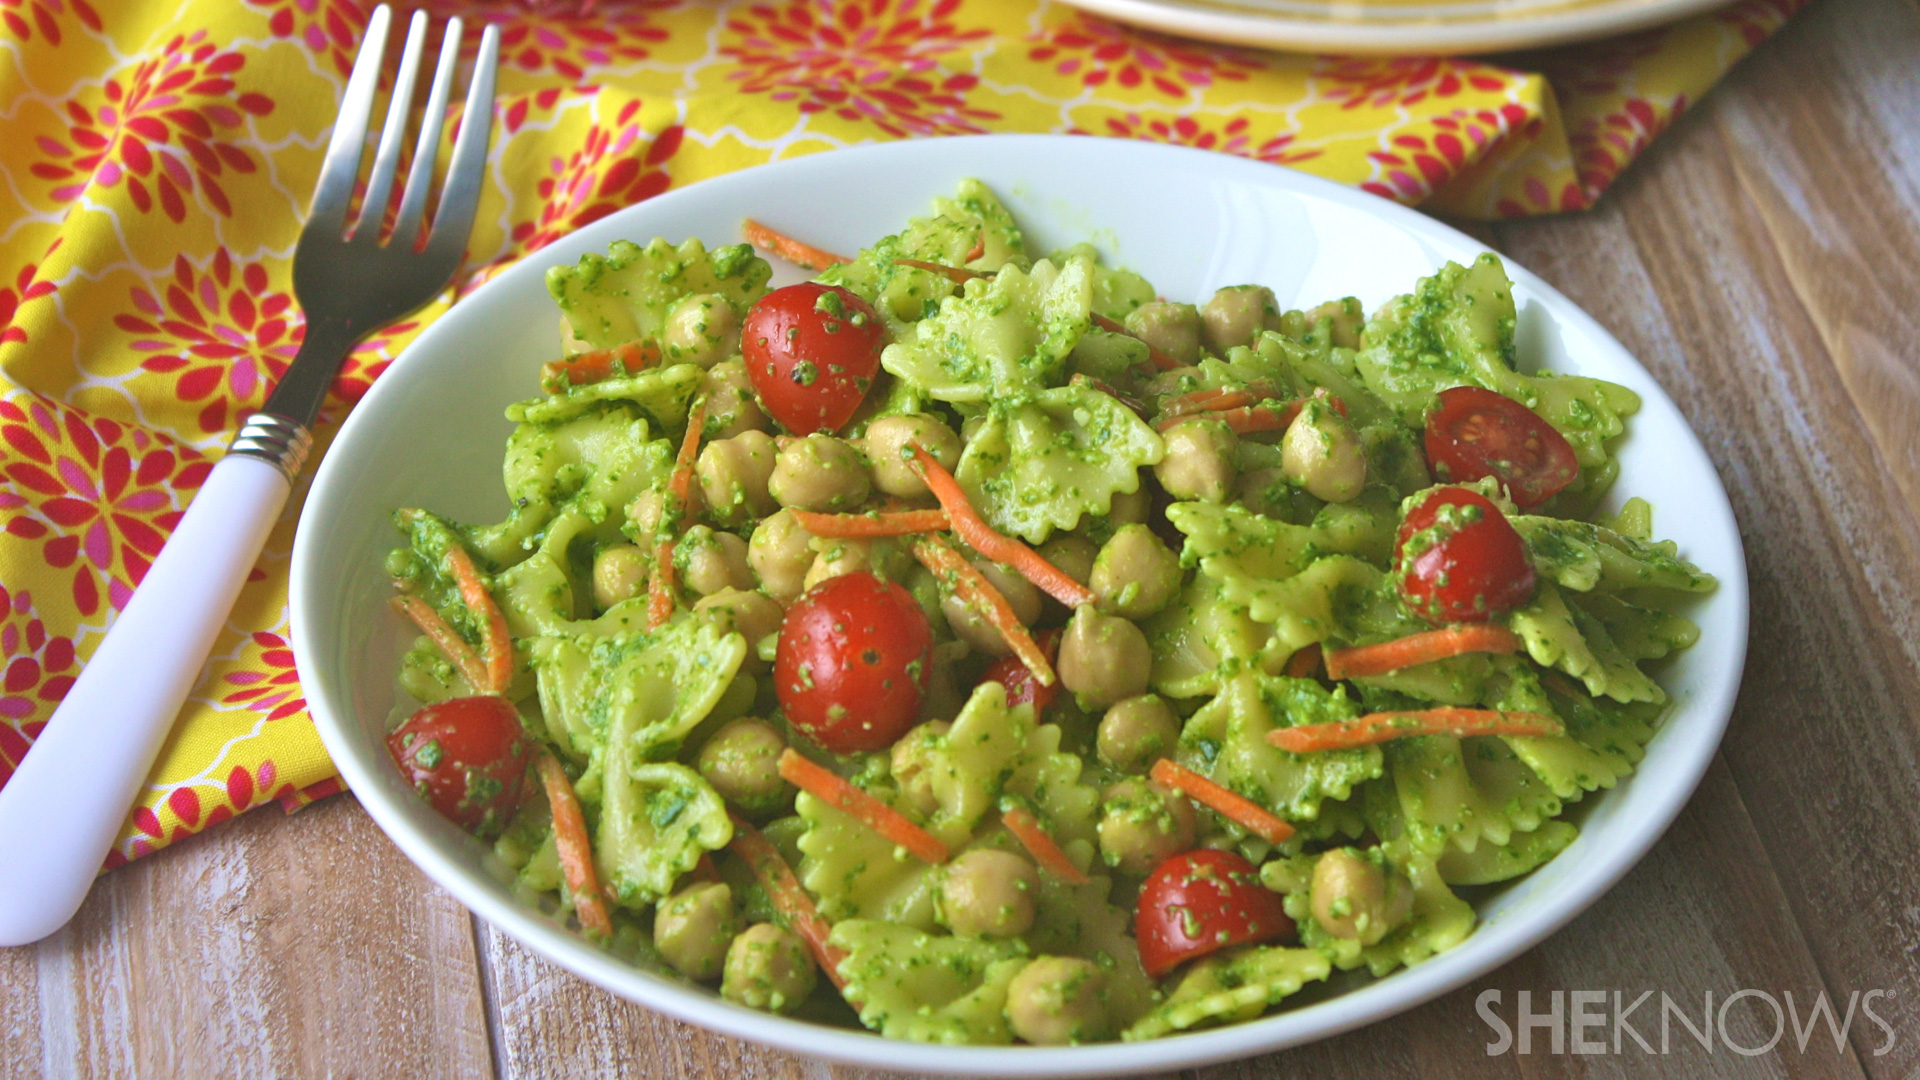 Pasta salad with chickpeas and spinach pesto